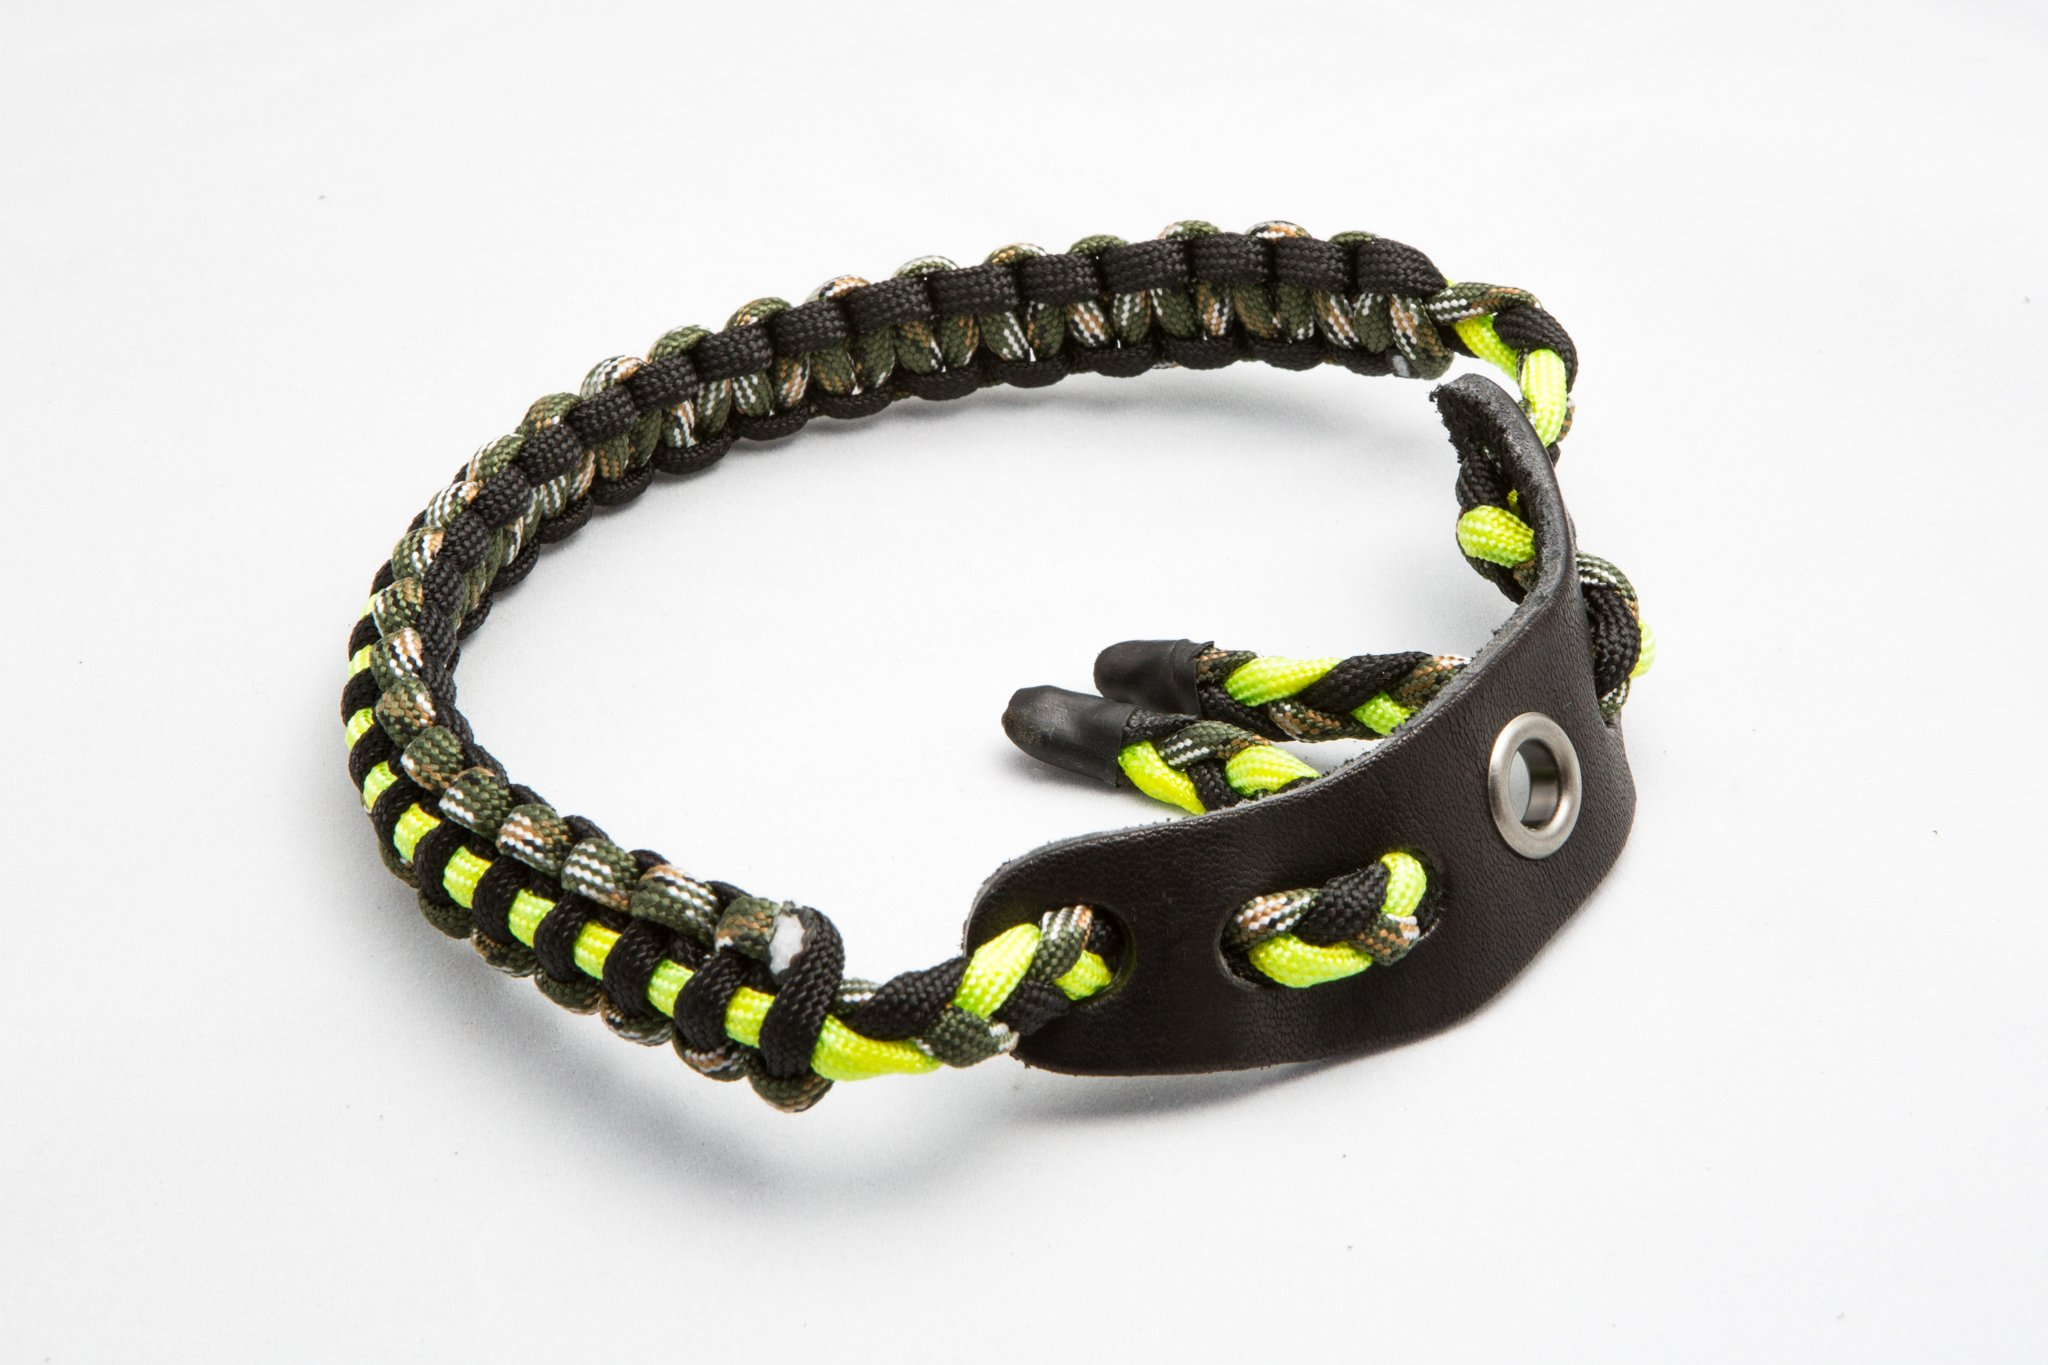 Ace Two Tactical Bow Wrist Sling 550 Paracord - Survival Hunting Shooting - Durable Leather with Grommet (Fluorescent Green) by Ace Two Tactical